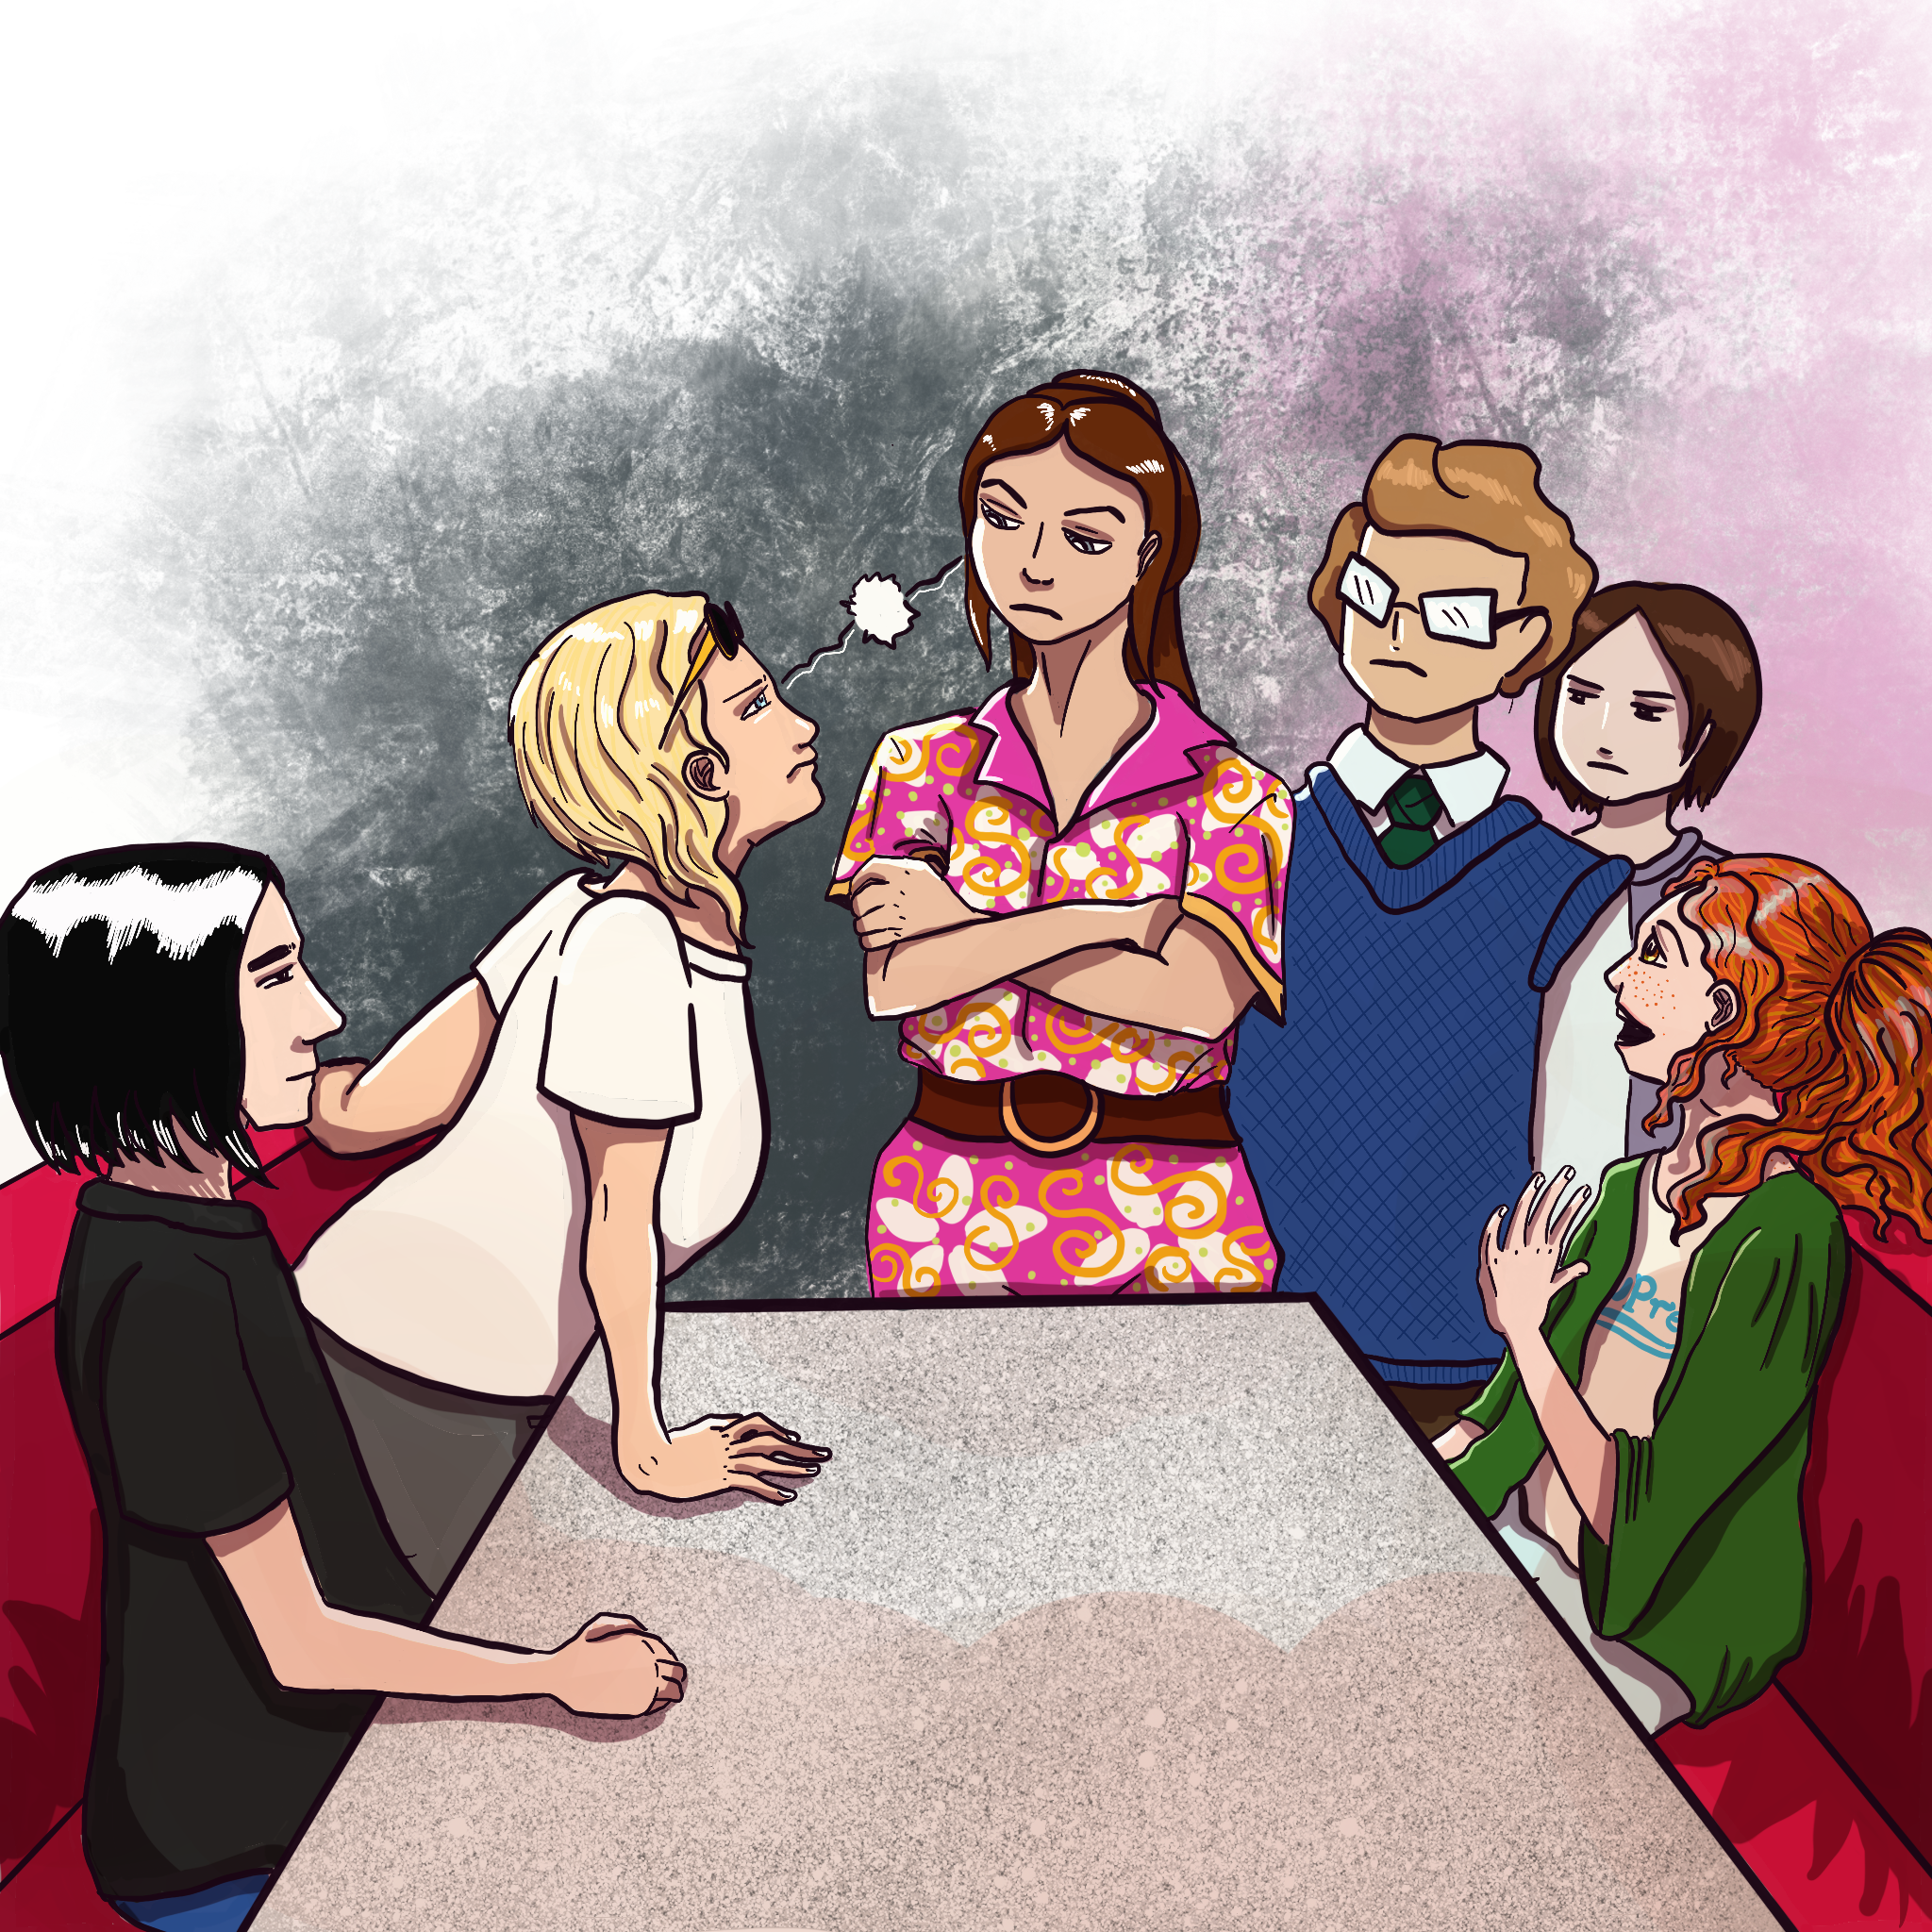 Pre-Prom Meeting with Peebs and the Gang - by Eve Golden-Woods